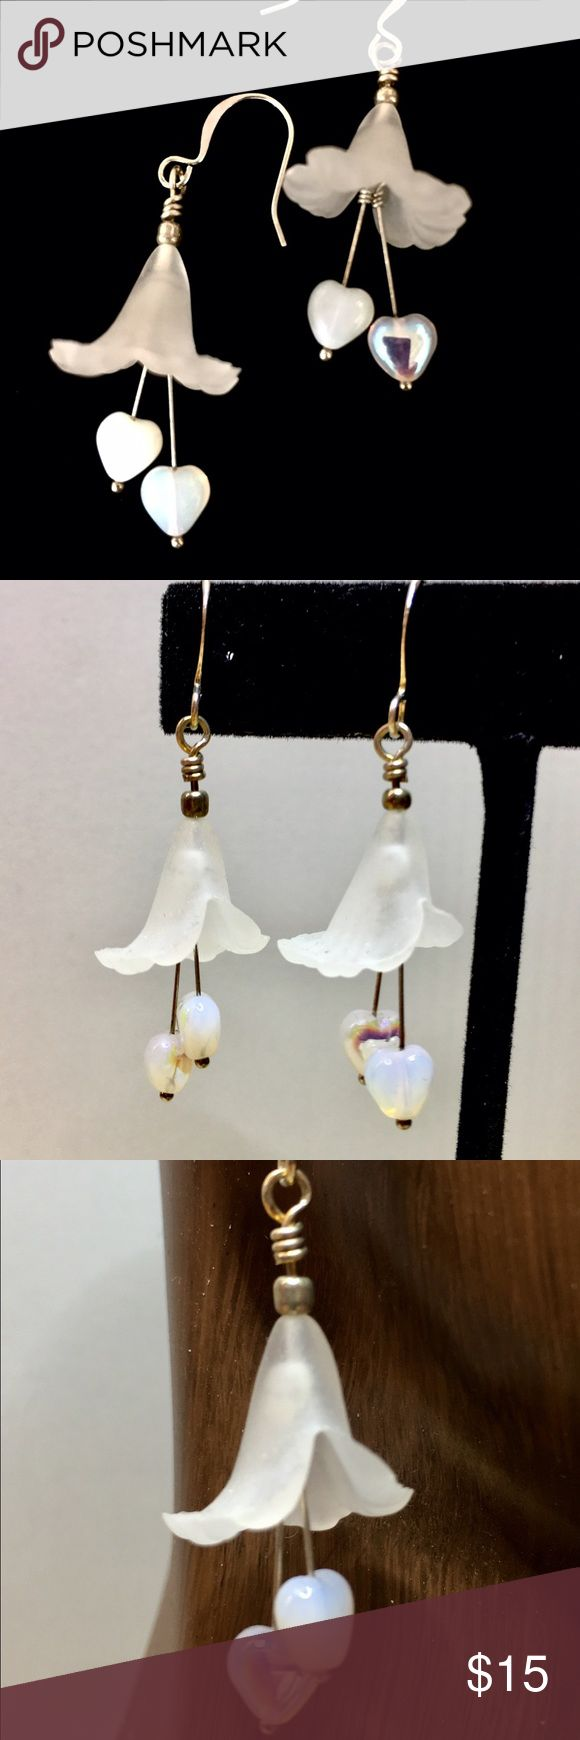 """White Lucite Lilly Dangle Earrings These are a really nice pair of handcrafted dangle earrings. Made from Lucite flowers and vintage Czech opalescent hearts. Measures 1/2"""" x 1 1/4"""" from the bottom of the dangle to the top of the flower. StevebDesigns Jewelry Earrings"""